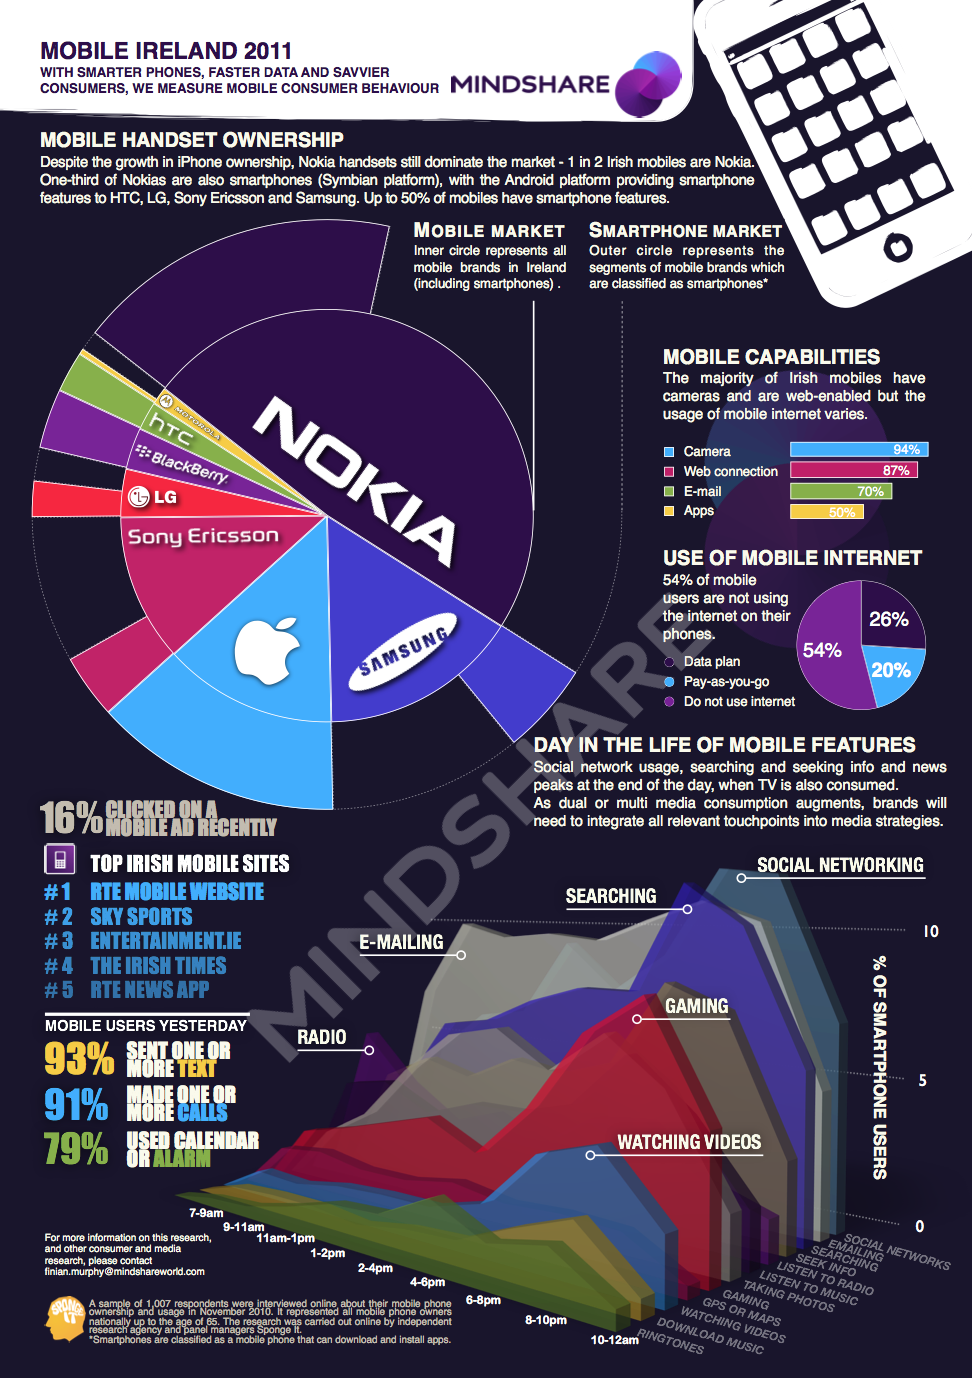 Mobile Ireland 2011 - Infographic by Mindshare